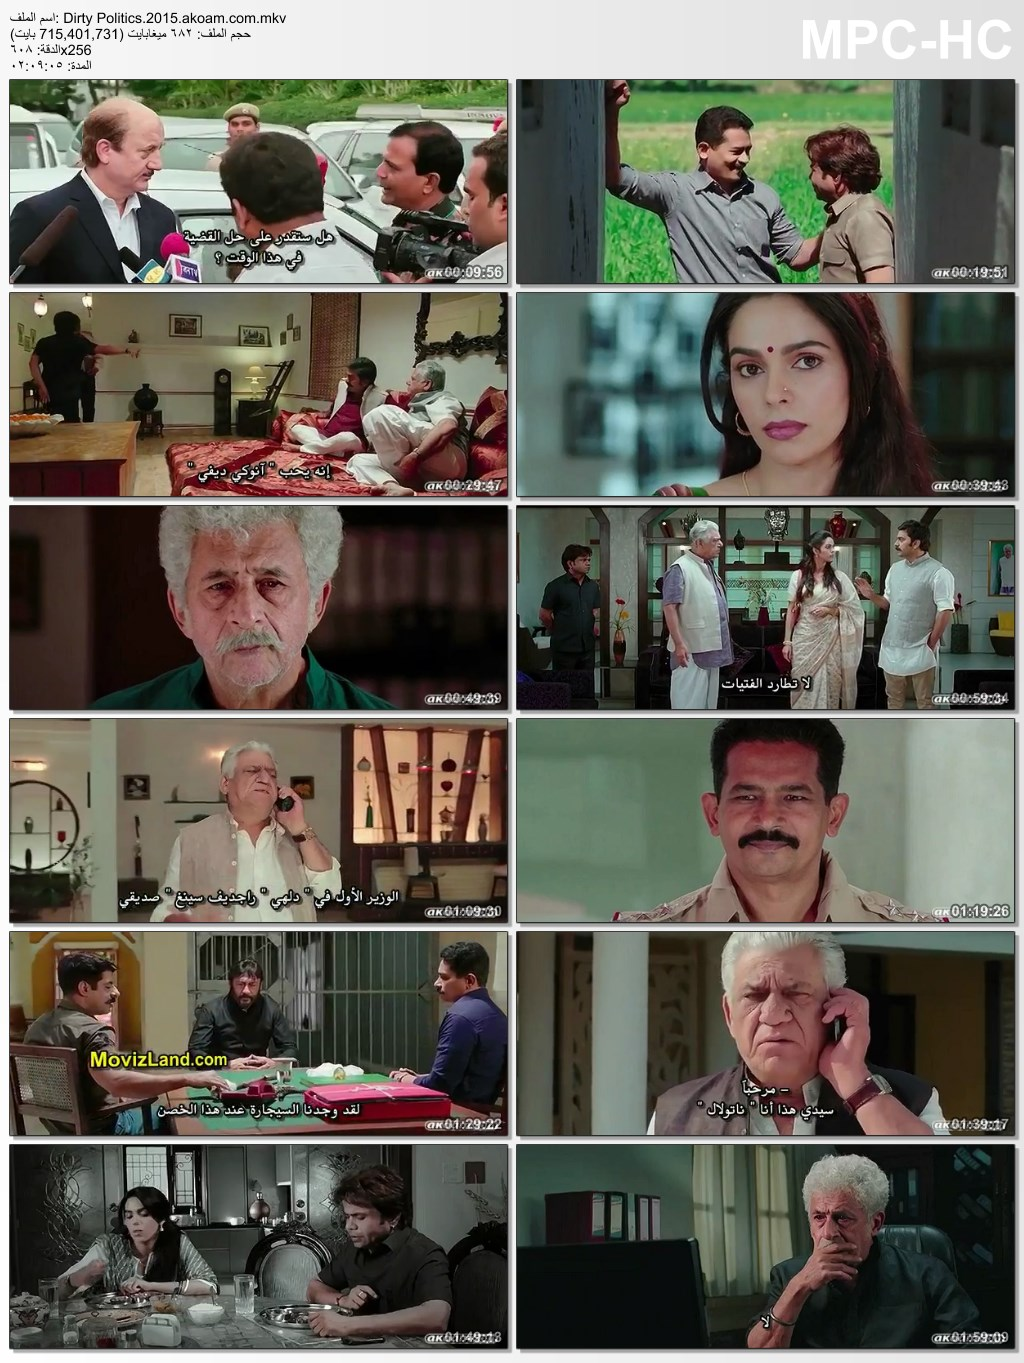 Dirty Politics 2015,Dirty,Politics,الهندي,الدراما,Dirty Politics,Anupam Kher